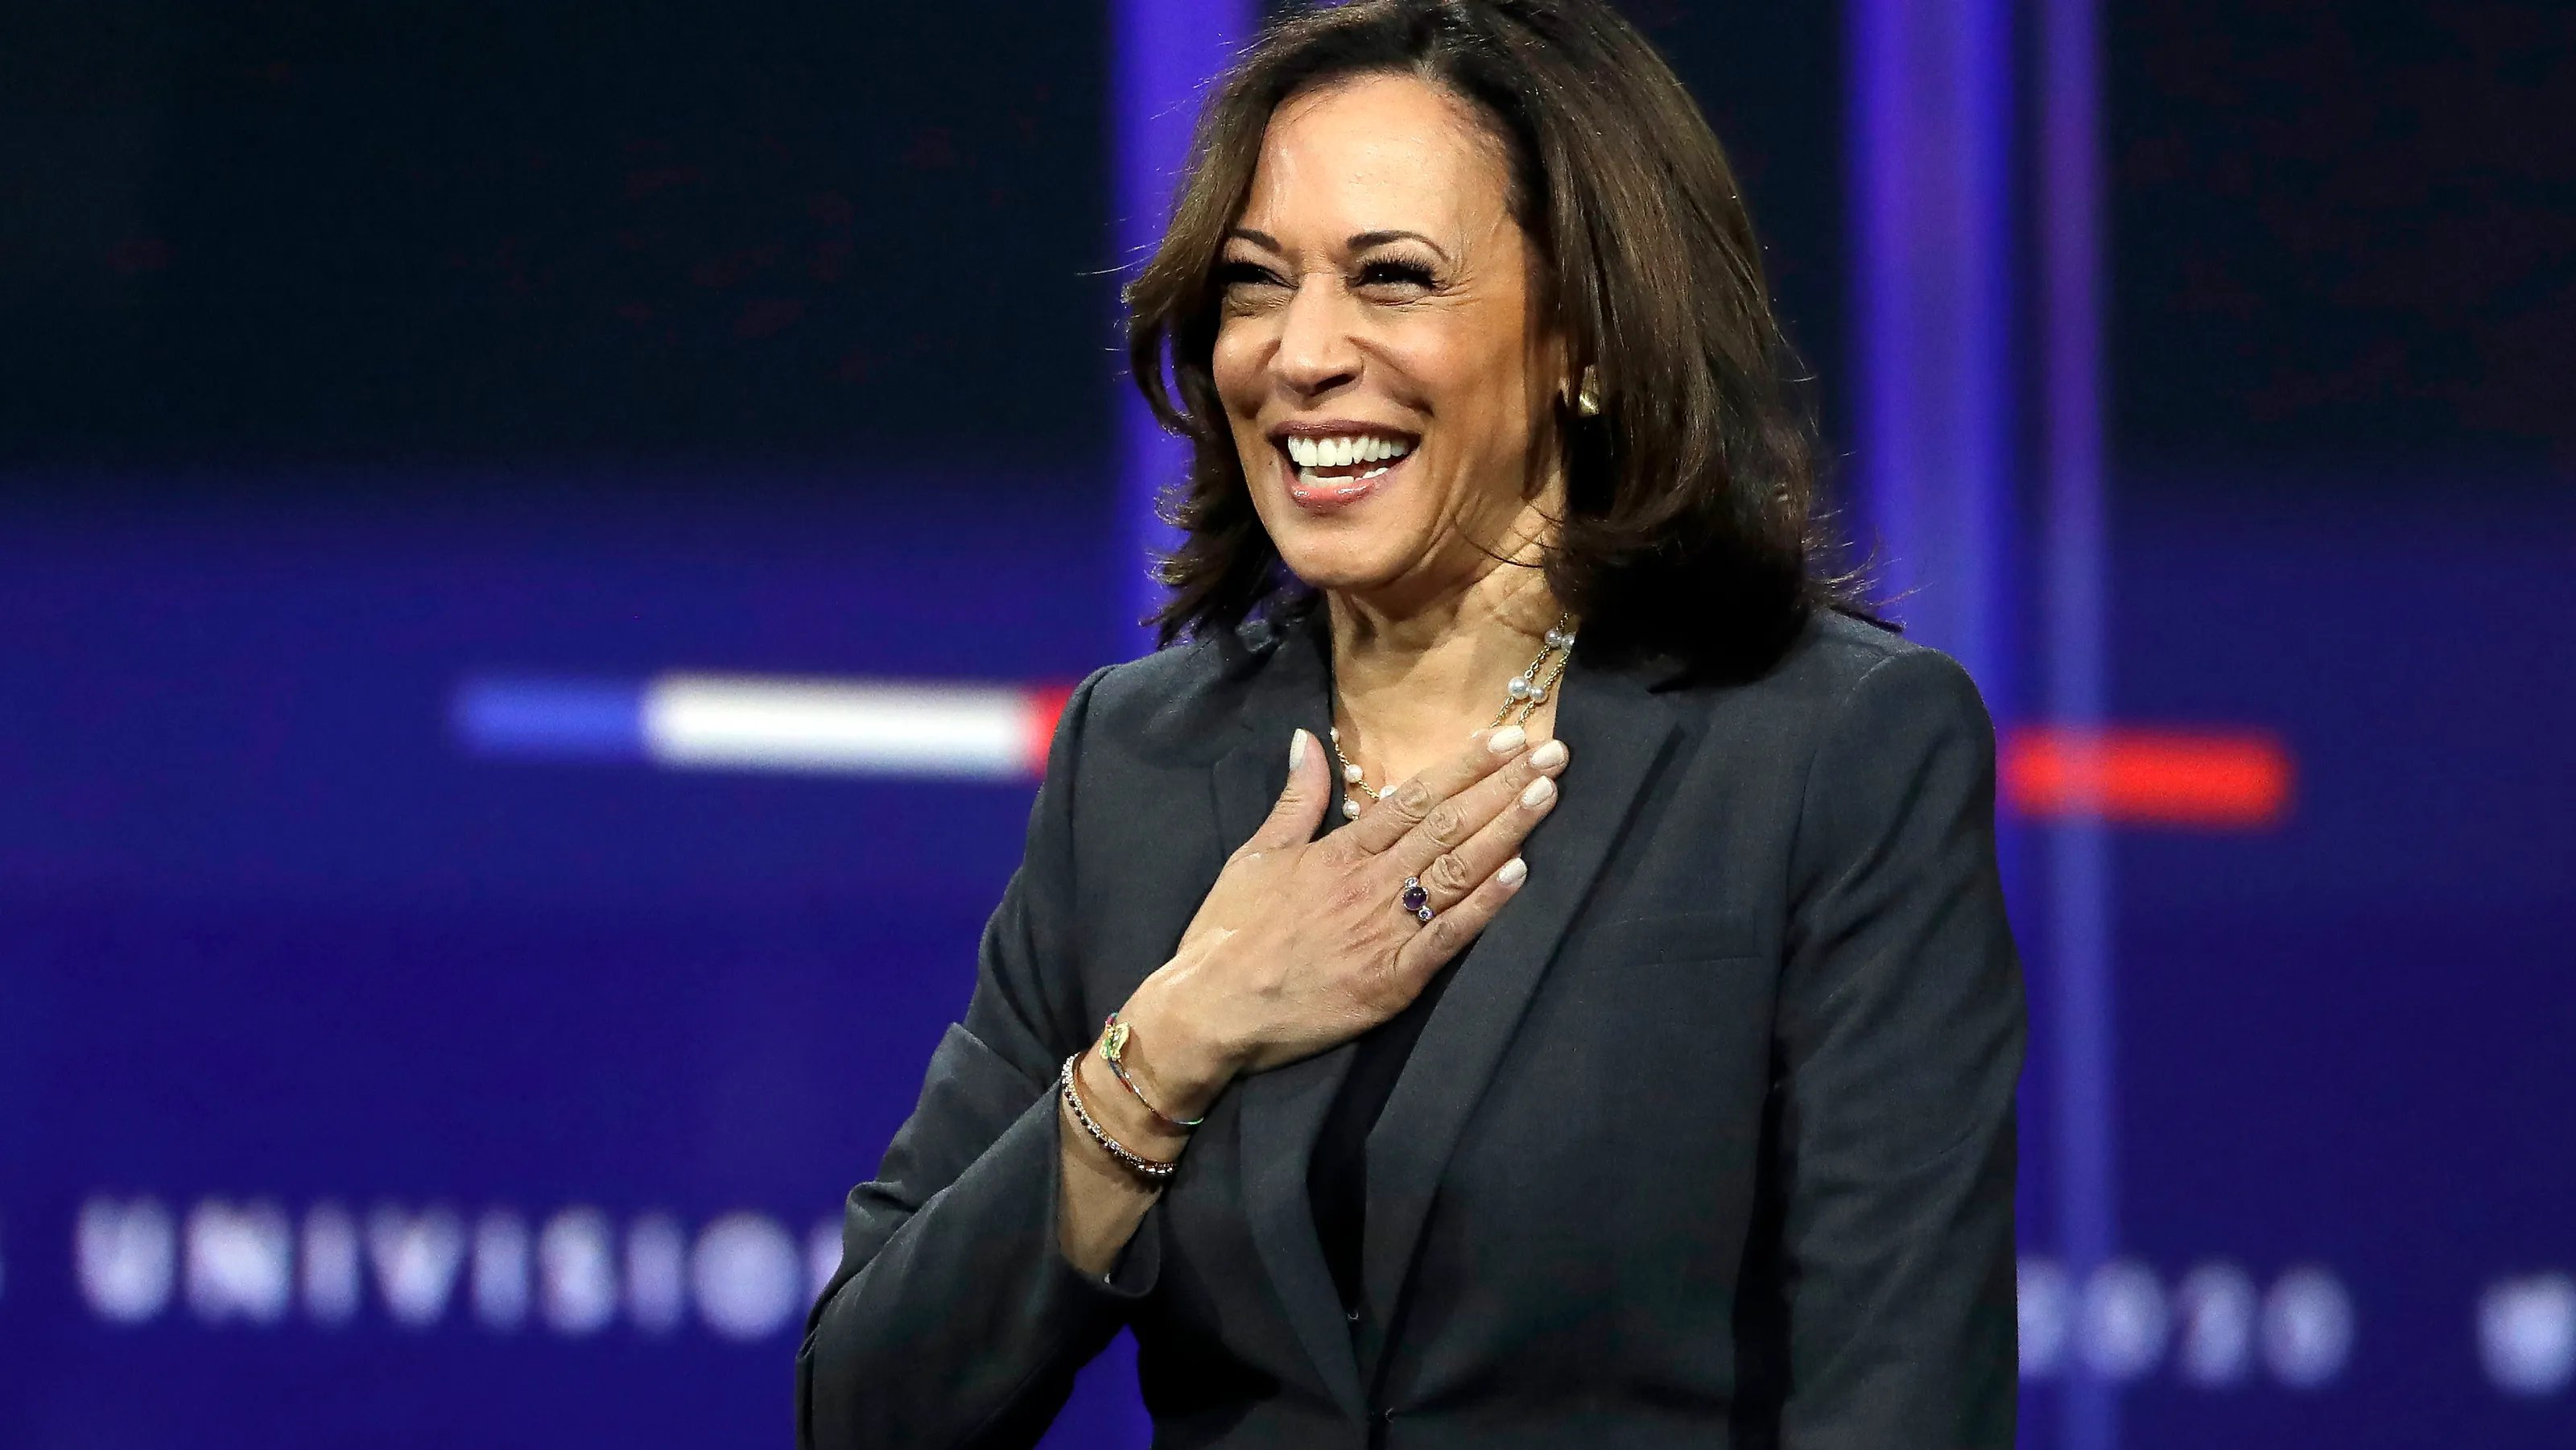 US Election 2020: Who is Vice Presidential Candidate Kamala Harris?